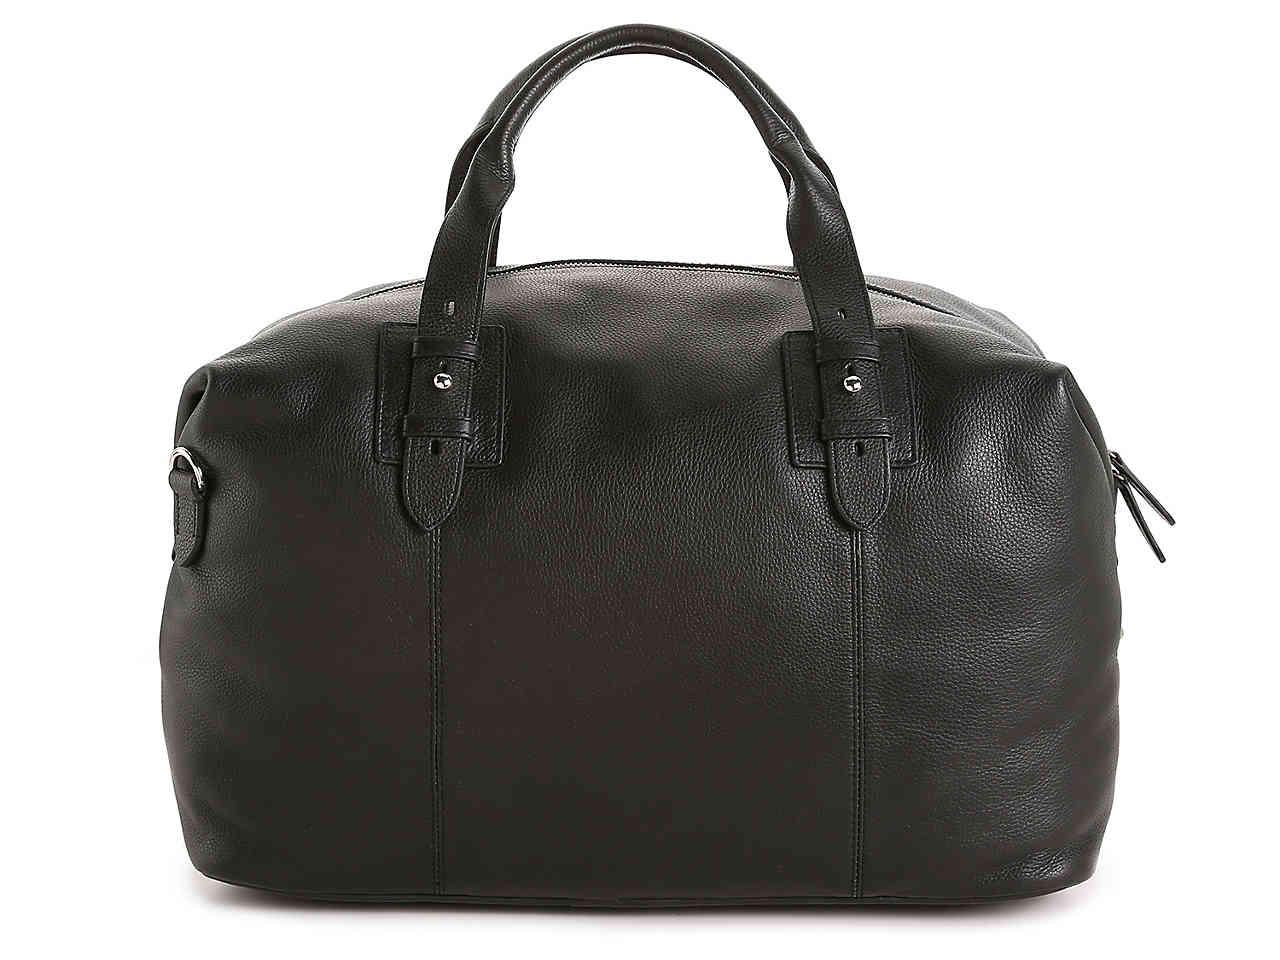 7f0f1e8ae8dd Lyst - Cole Haan Leather Weekender Bag in Black for Men